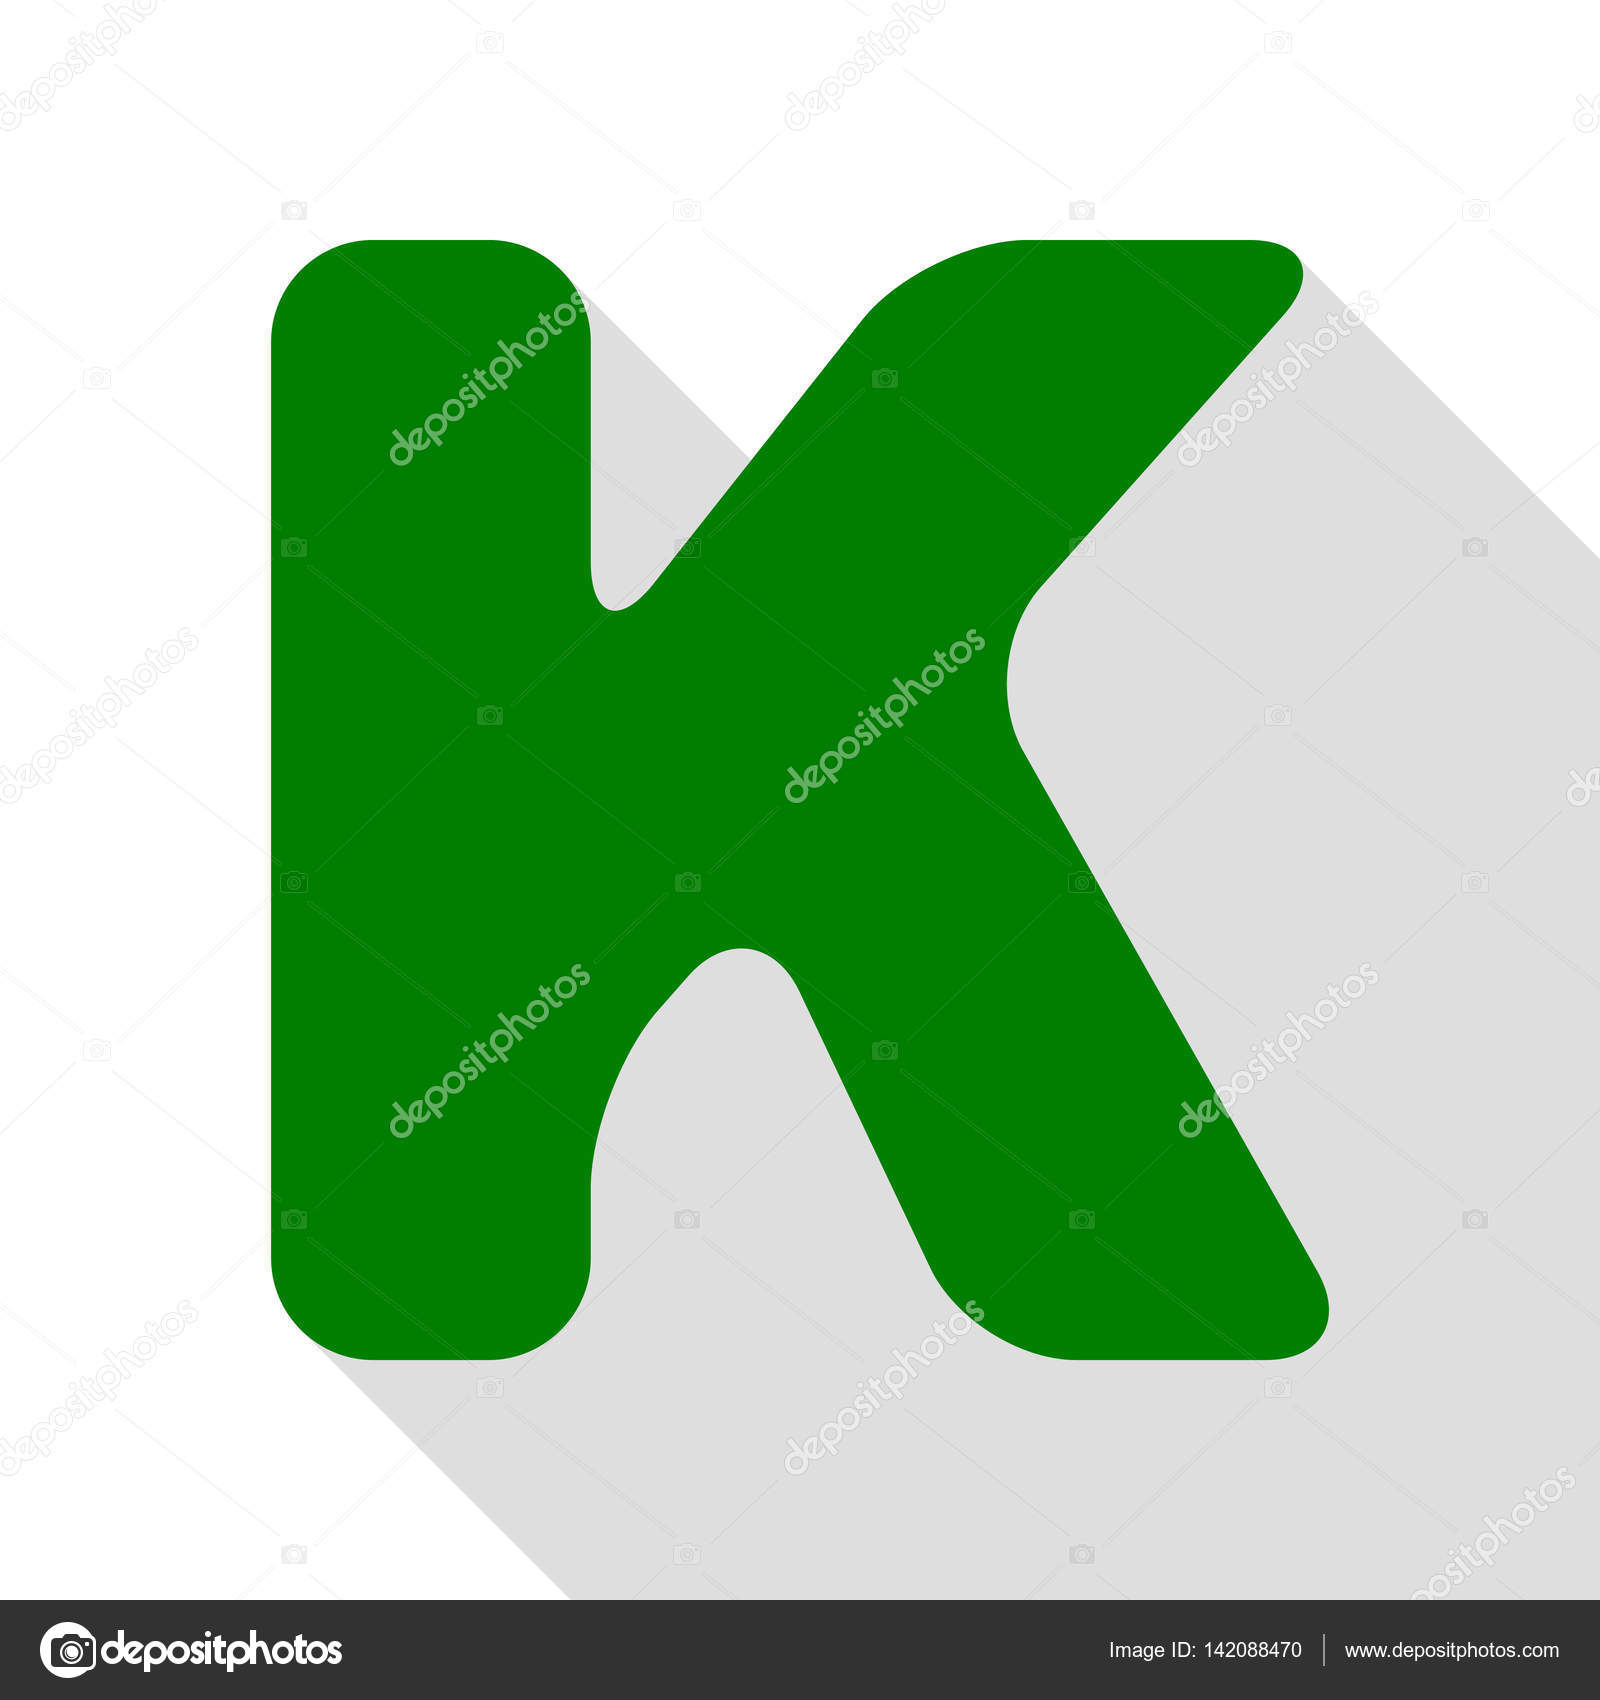 letter k sign design template element green icon with flat style shadow path